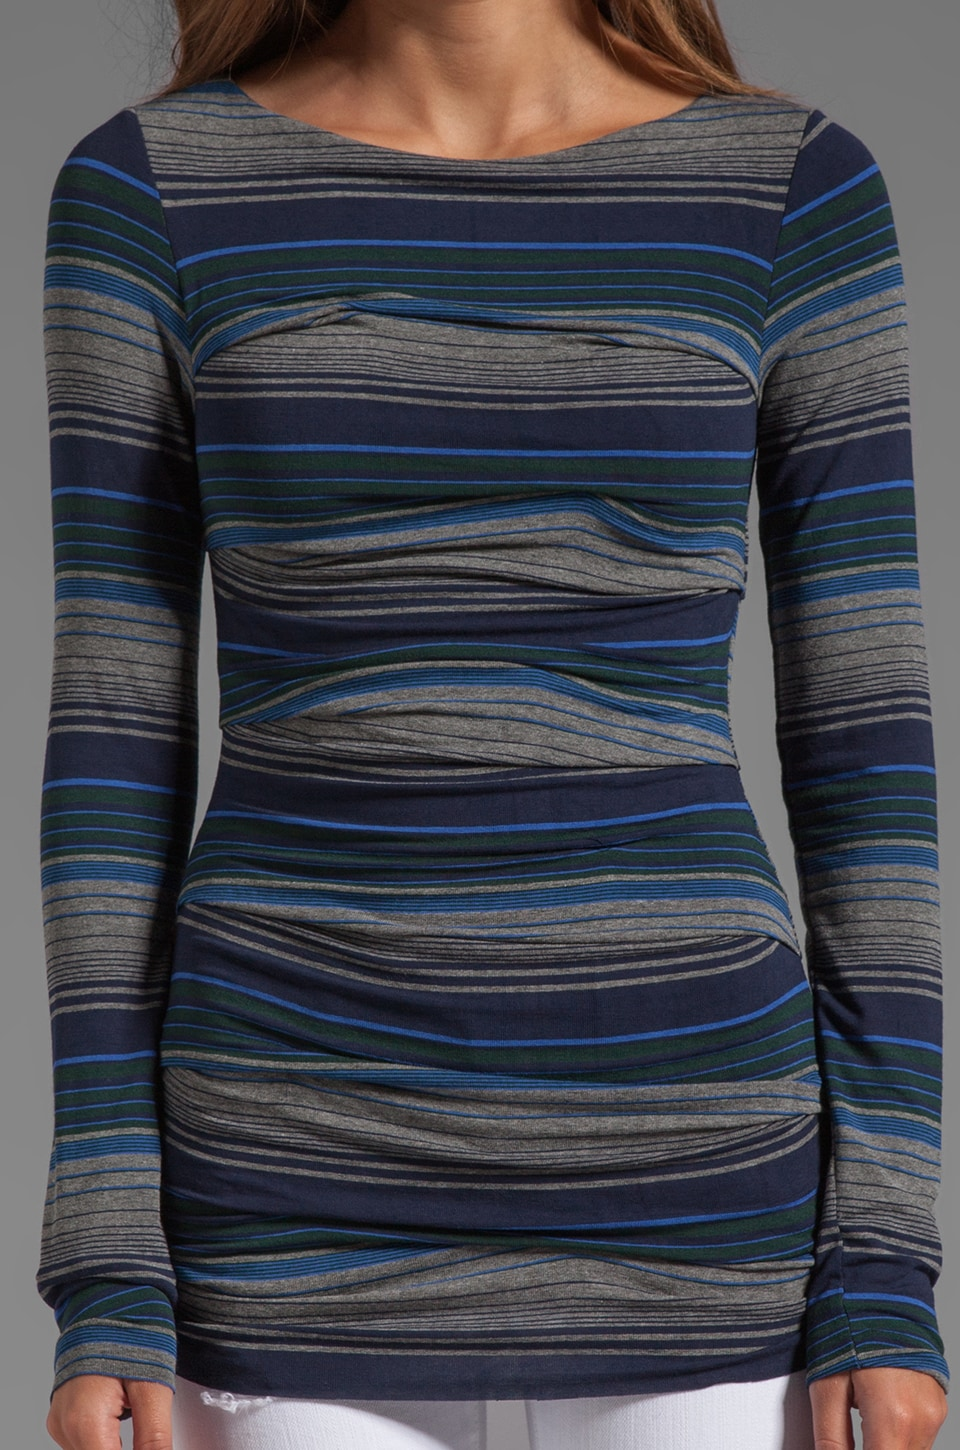 Bailey 44 Mercury Striped Top in Mercury Heather